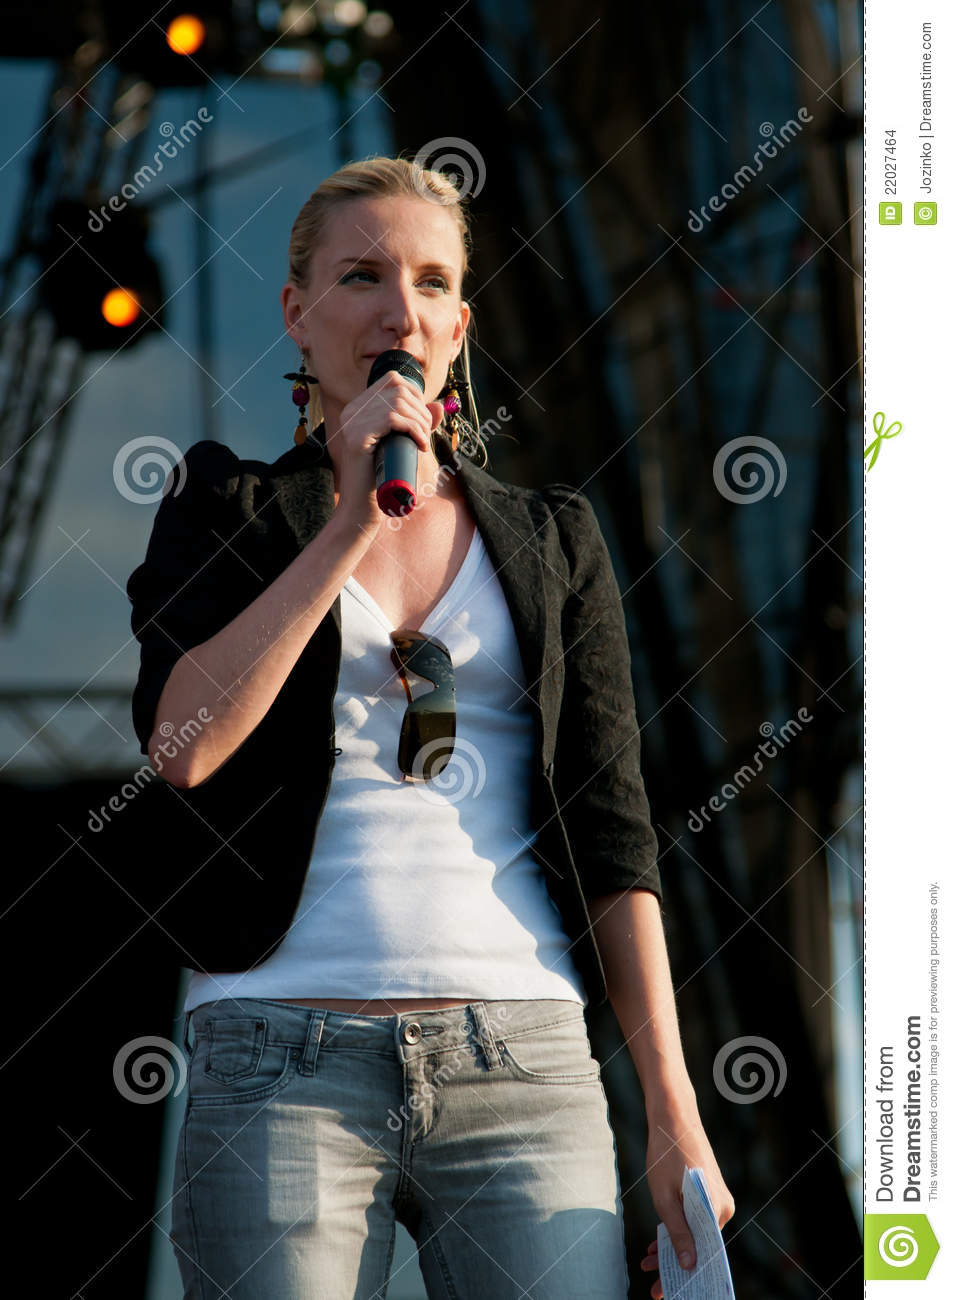 Adela editorial stock image  Image of stage, people, girl